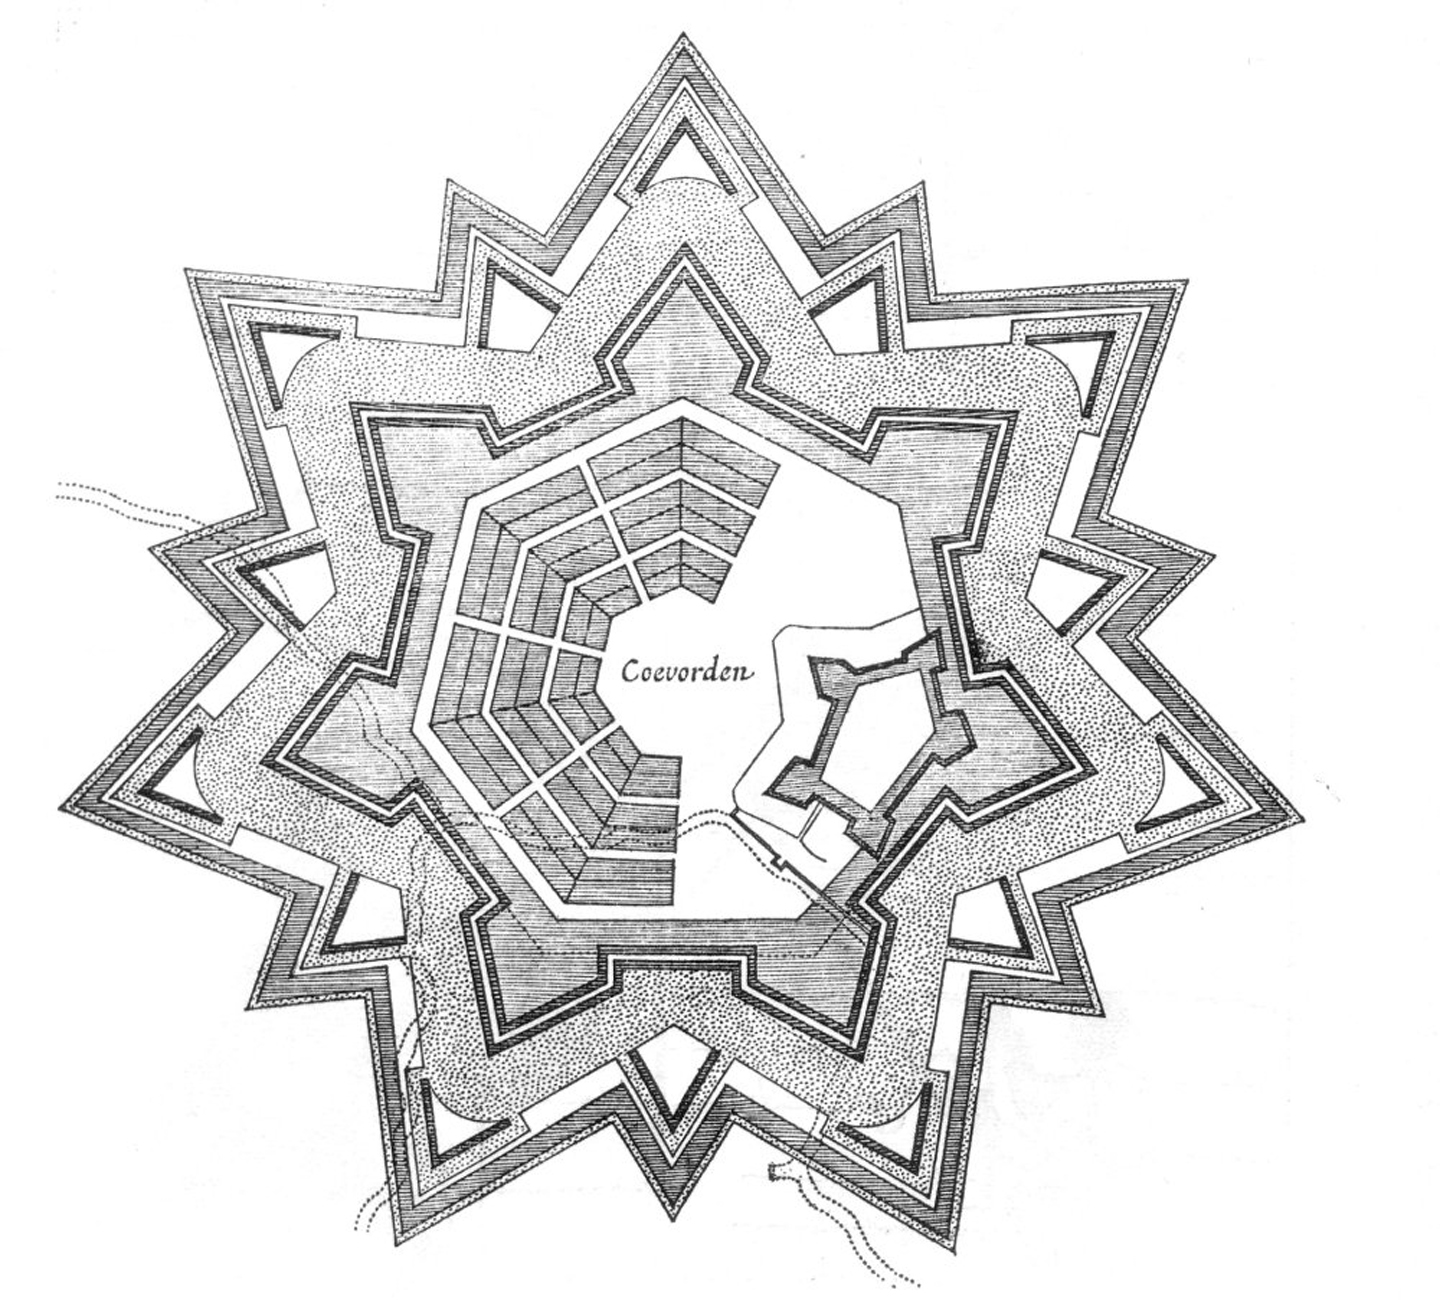 Fortification plan of Coevorden (The Netherlands), laid out in a radial pattern within polygonal fortifications and extensive outer earthworks as reconstructed in the early seventeenth century by Maurice of Nassau, Prince of Orange.